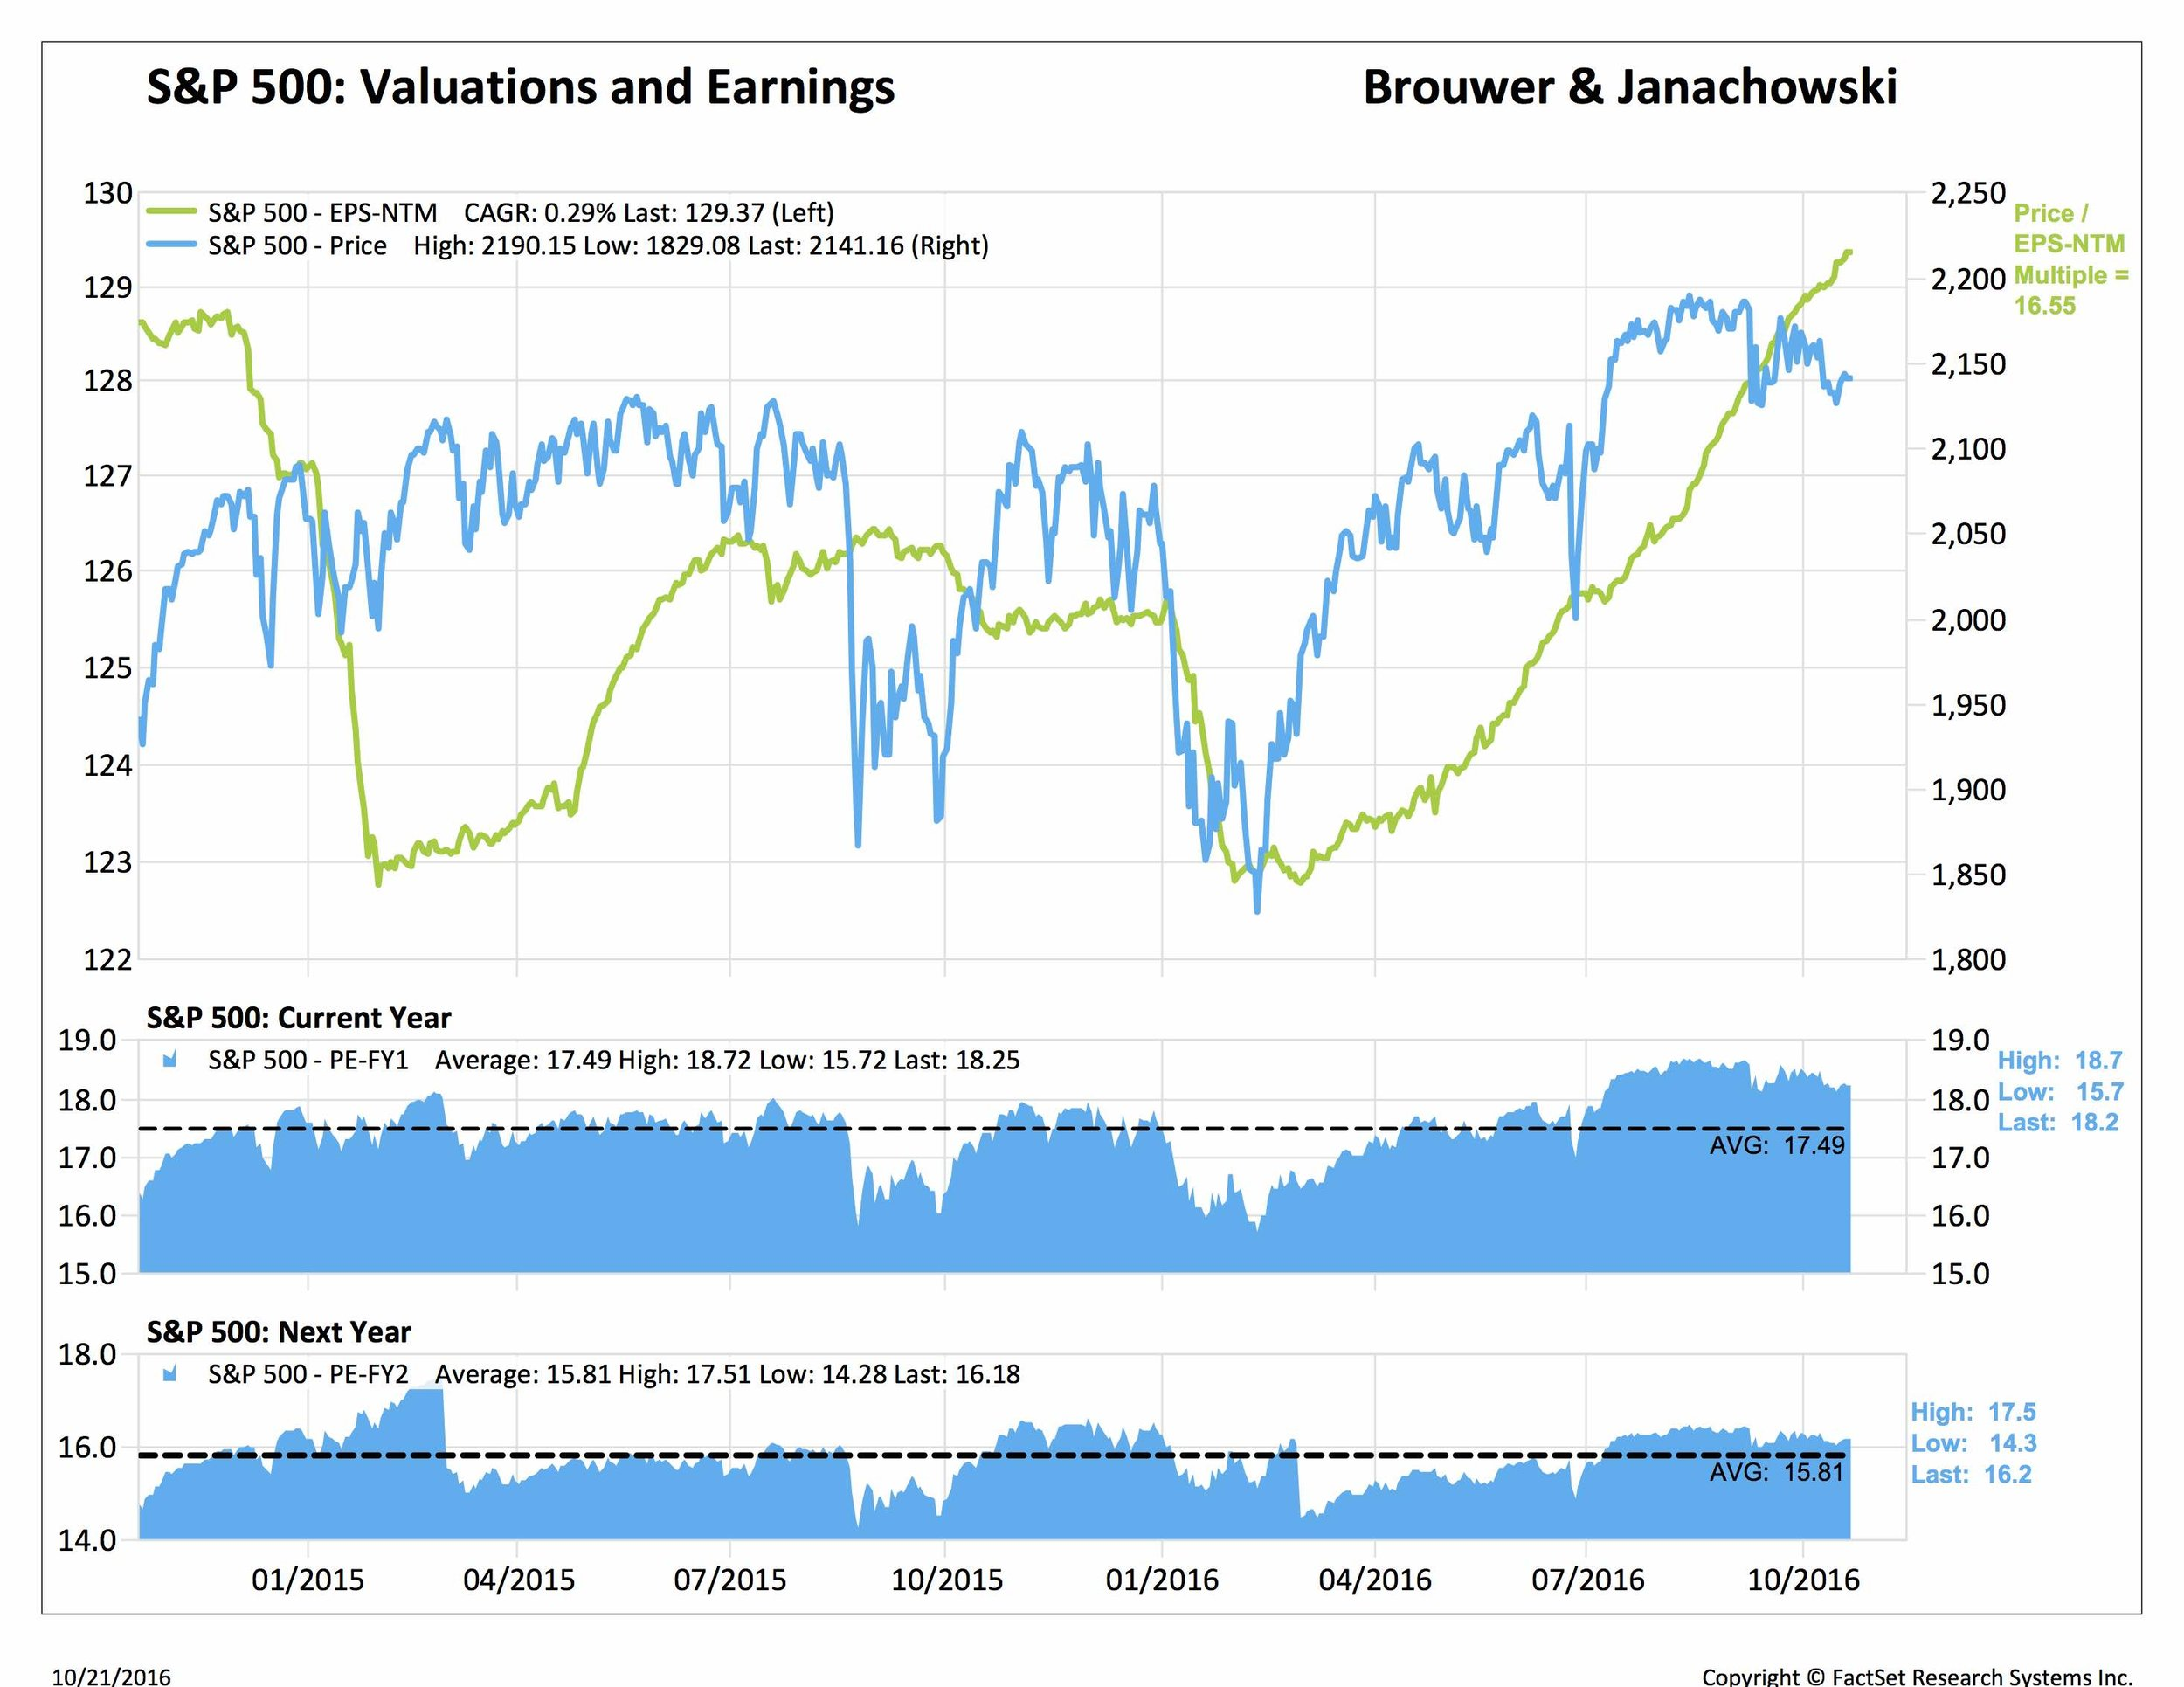 sp 500 valuations and earnings